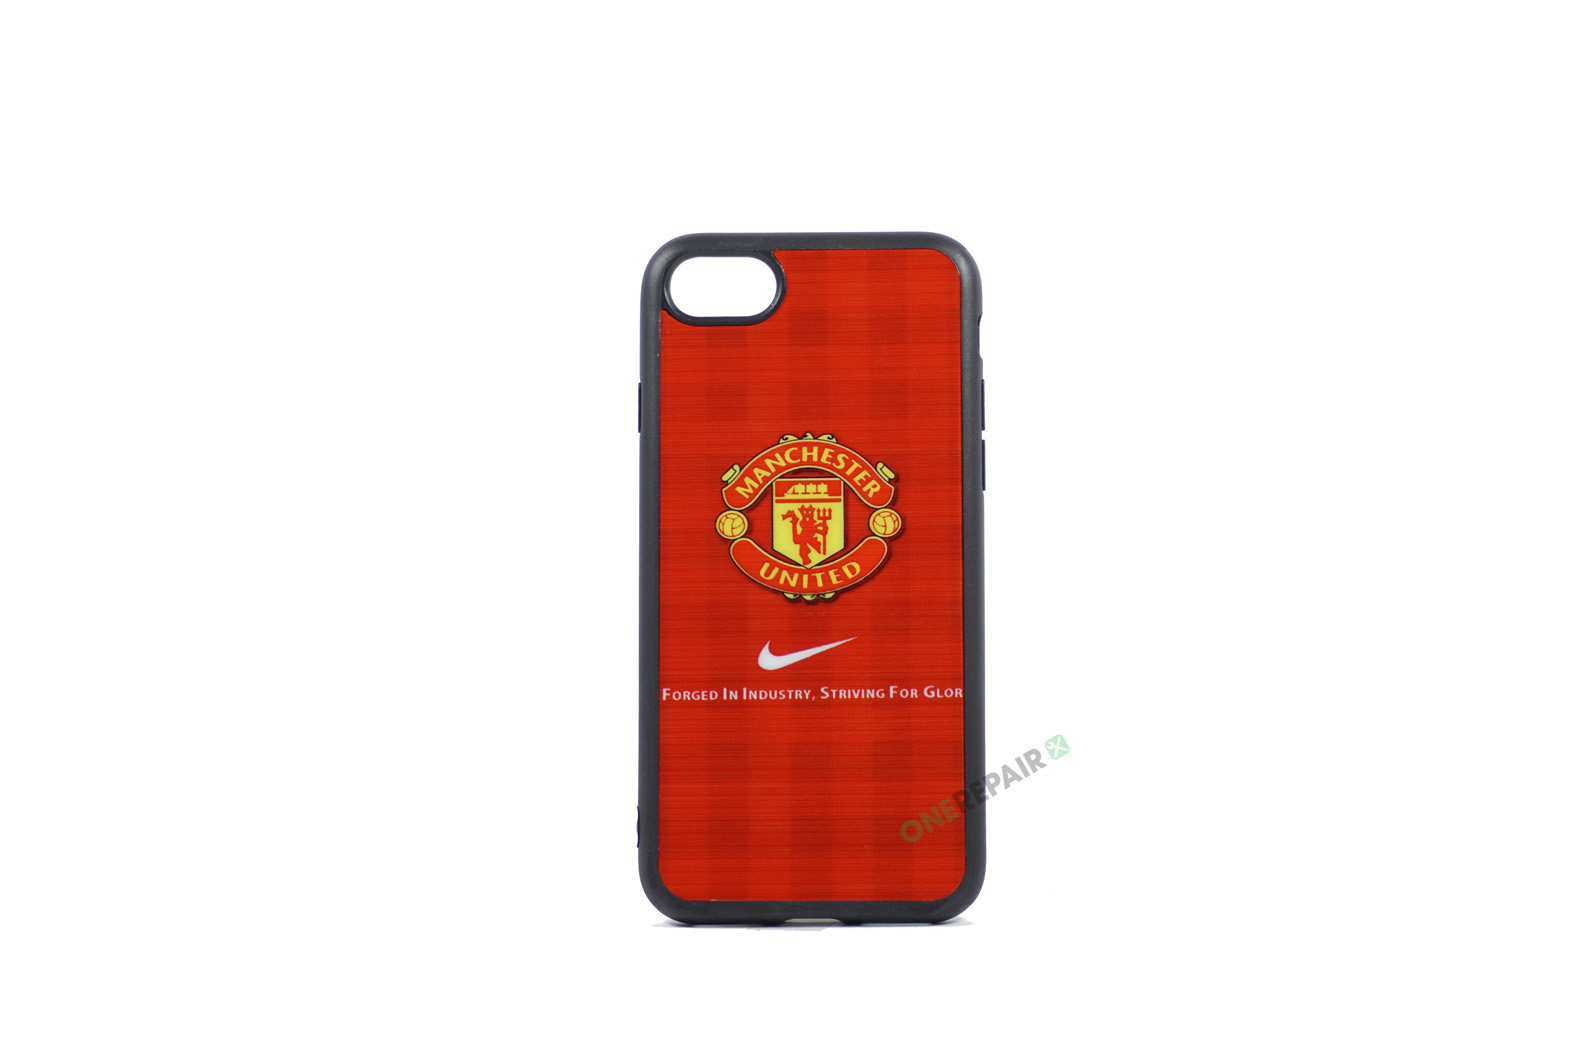 350761_iPhone_7_8_Fodbold_Manchester_United_Red_Roed_Cover_OneRepair_WM_00001